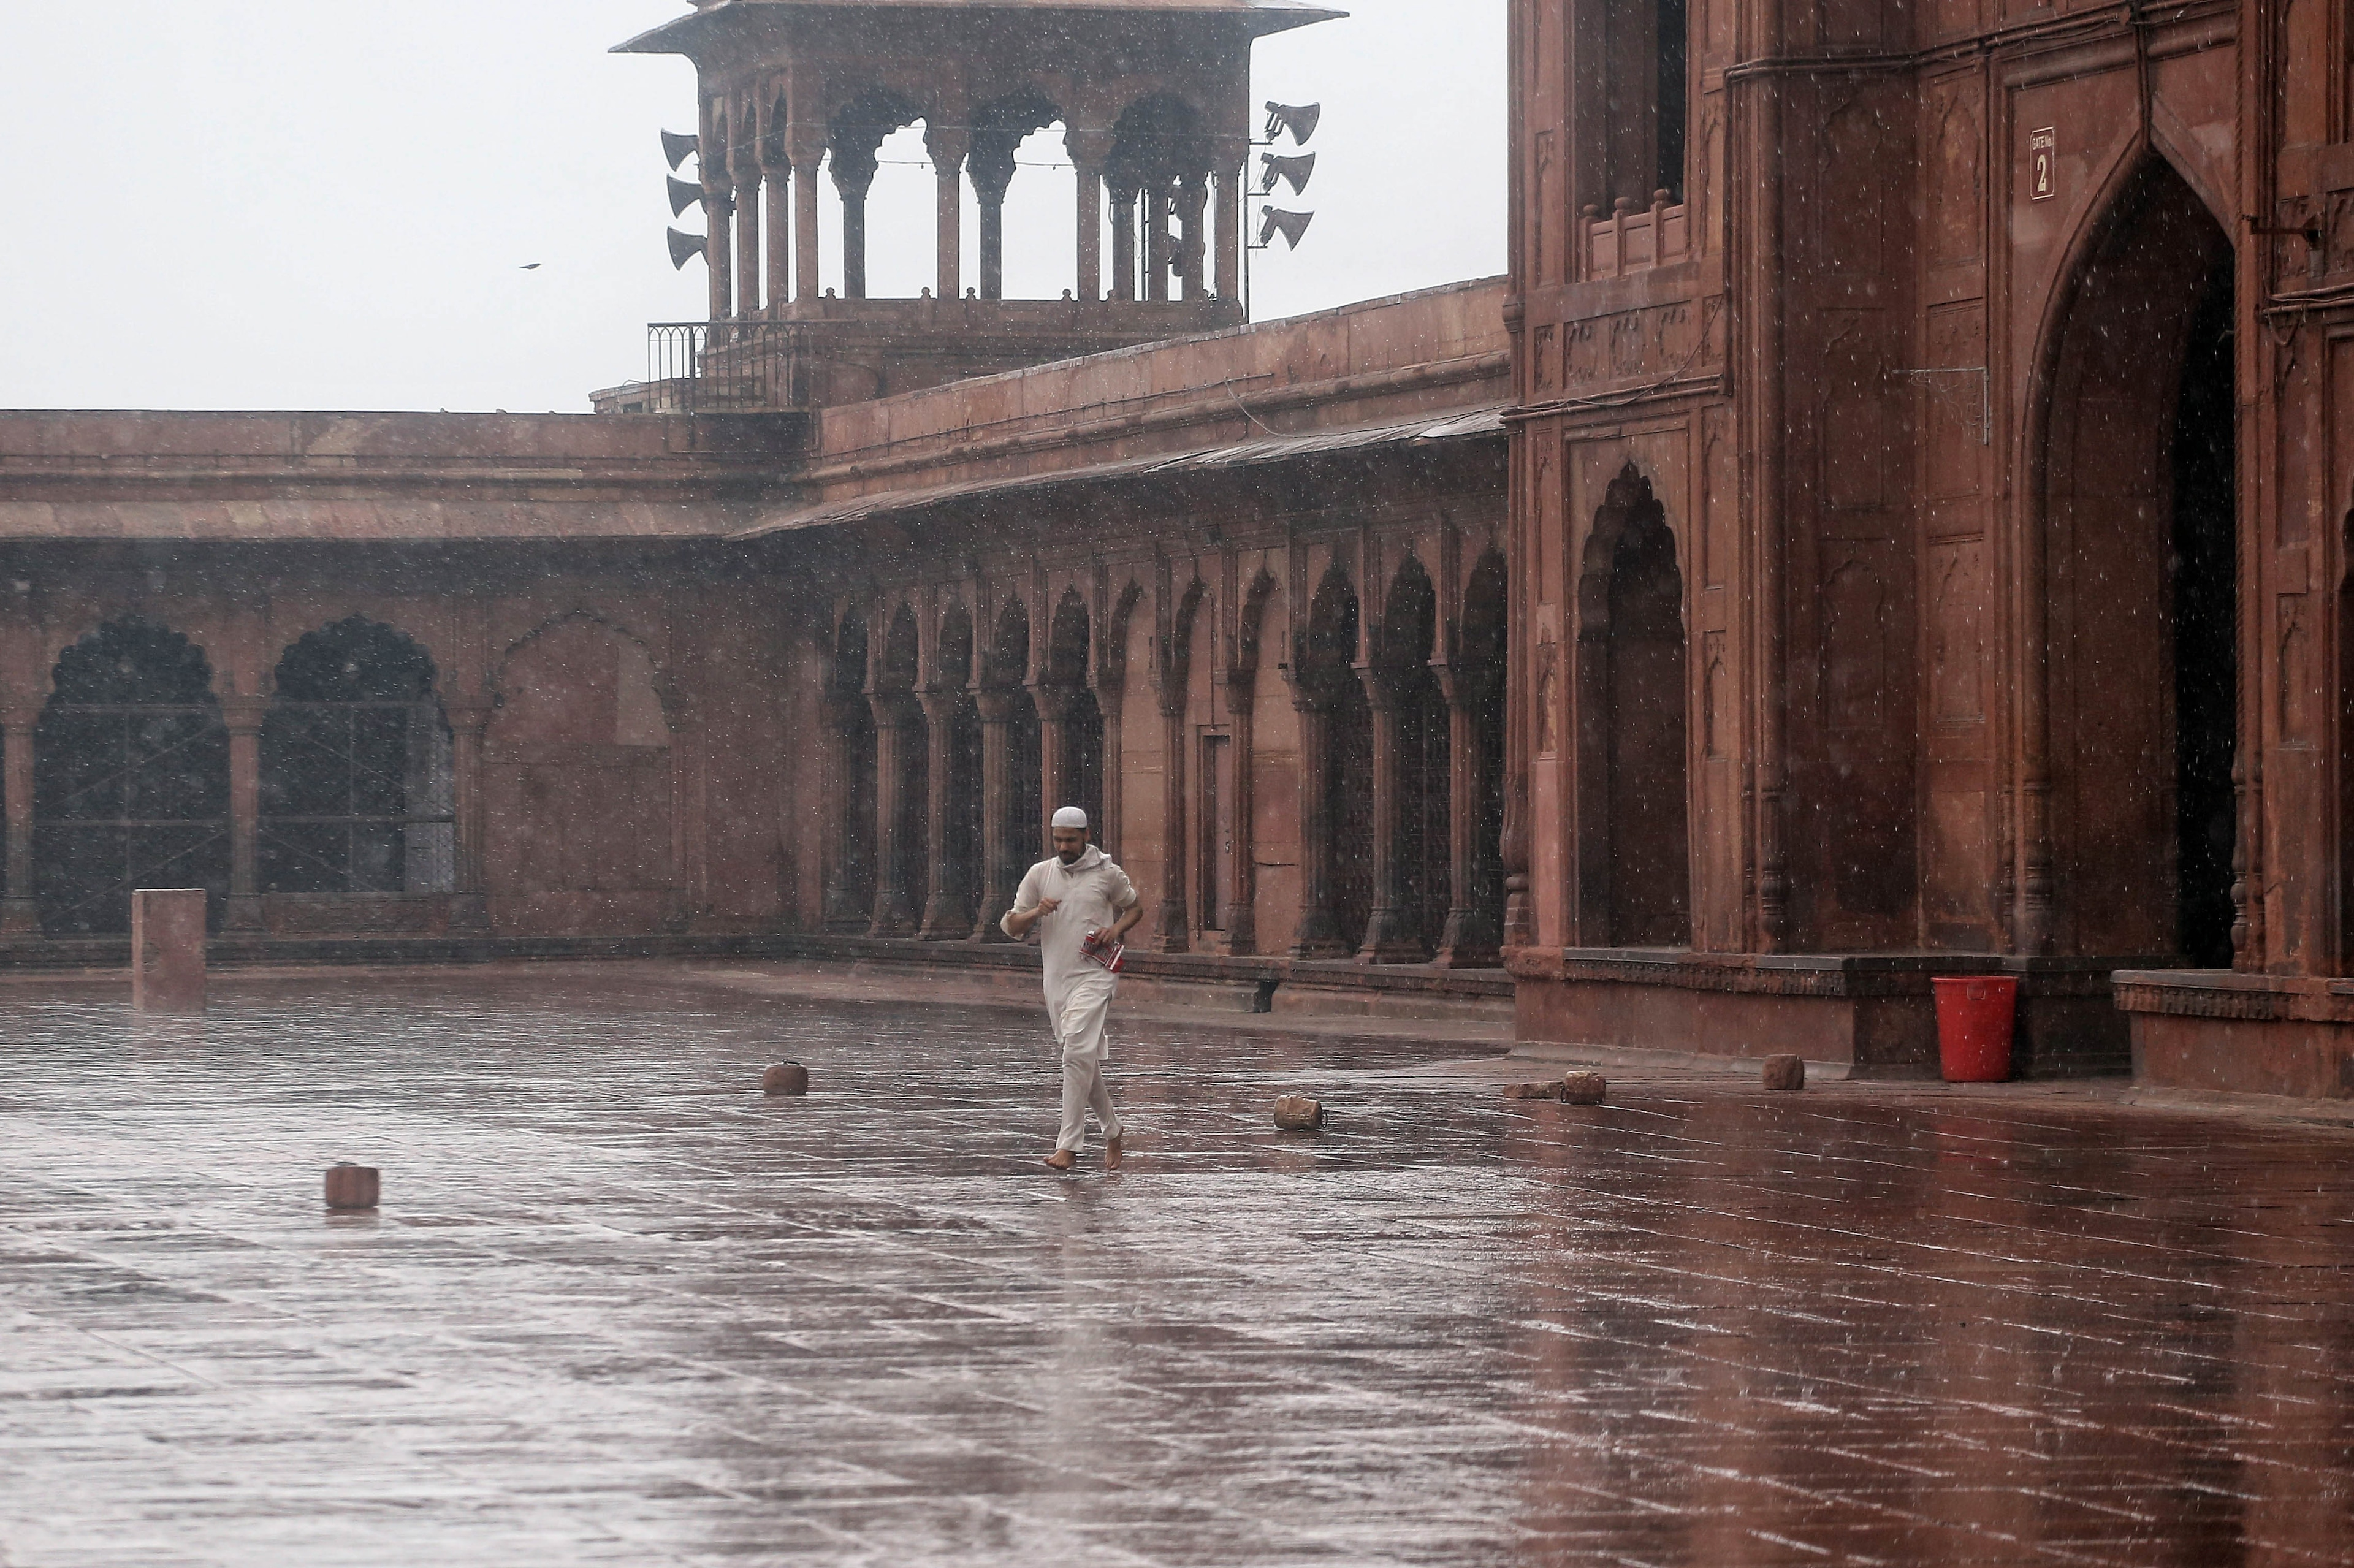 A man walks during the rain at Jama Masjid in New Delhi. Photo: ANI